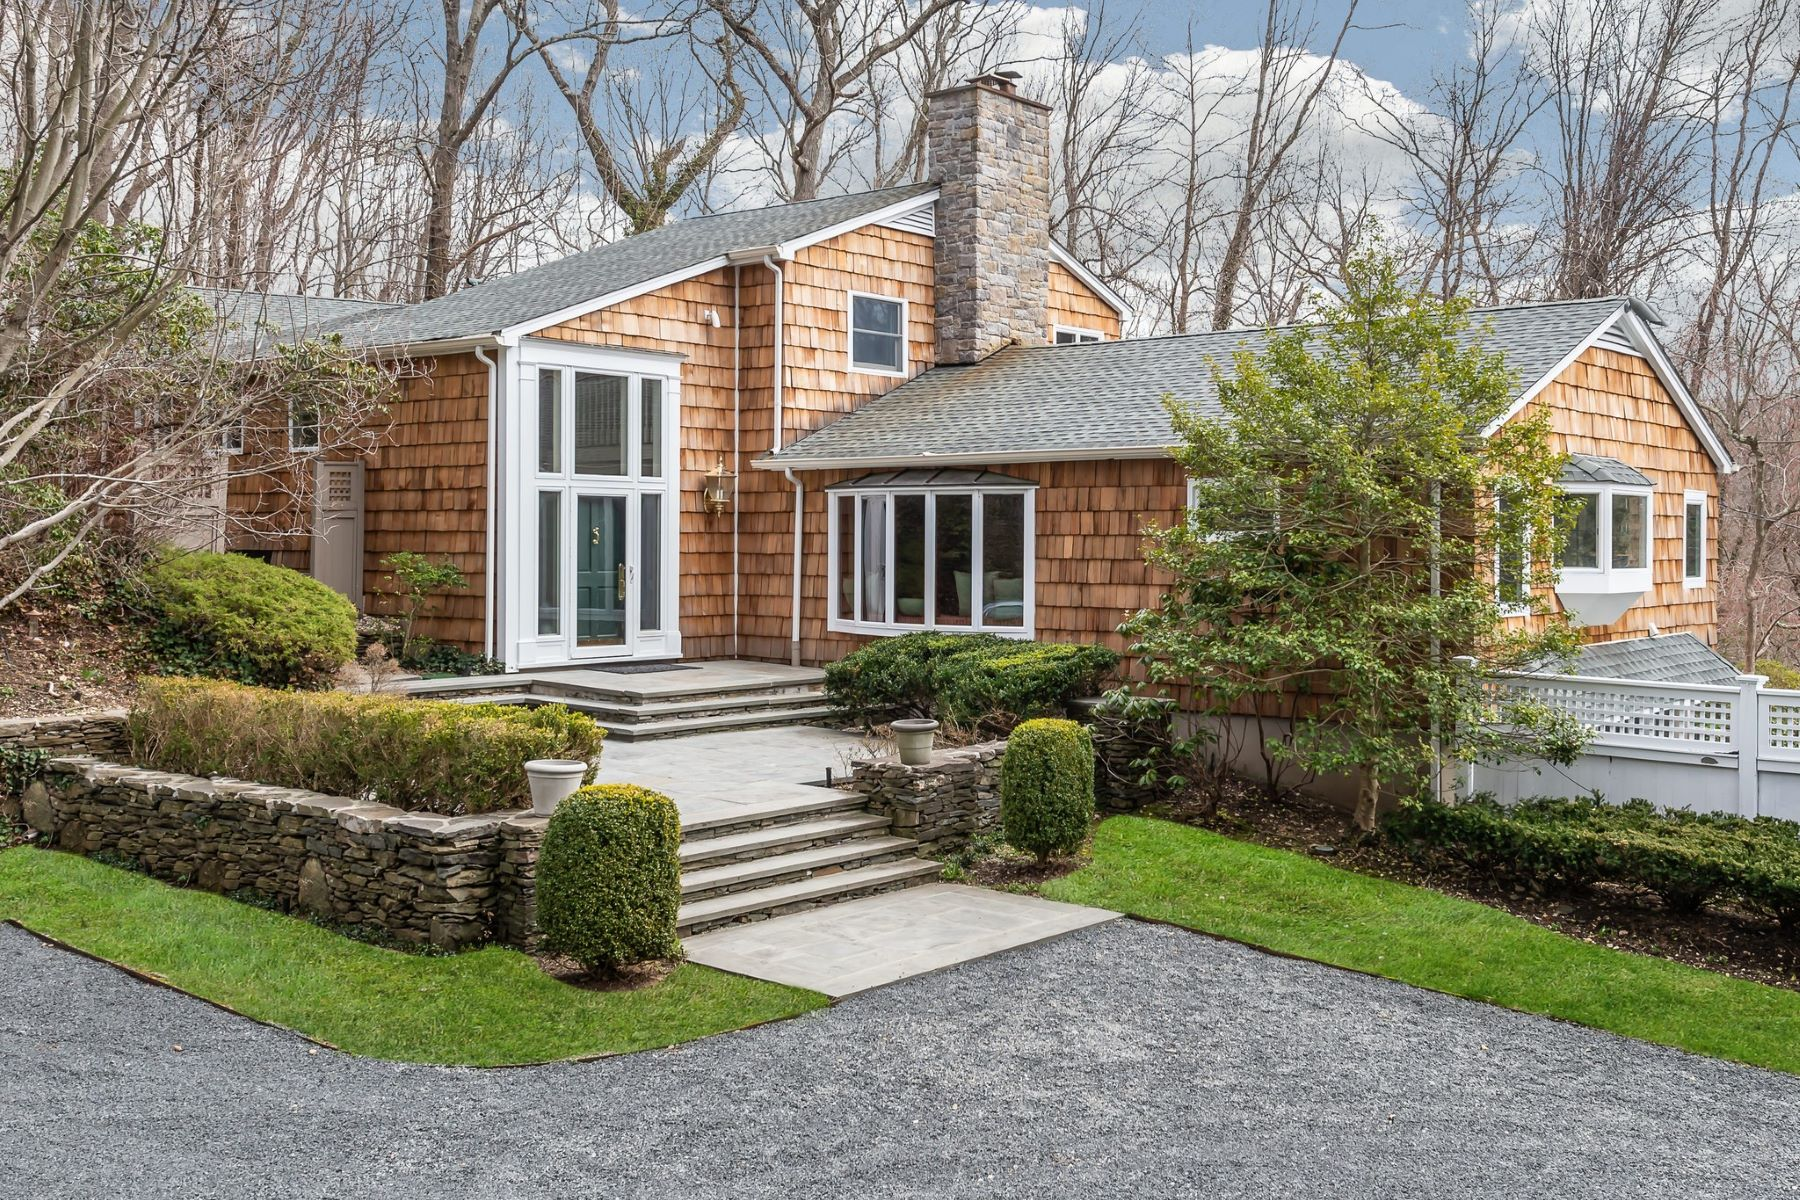 Single Family Homes for Active at Laurel Hollow 1160 Cove Edge Rd Laurel Hollow, New York 11791 United States